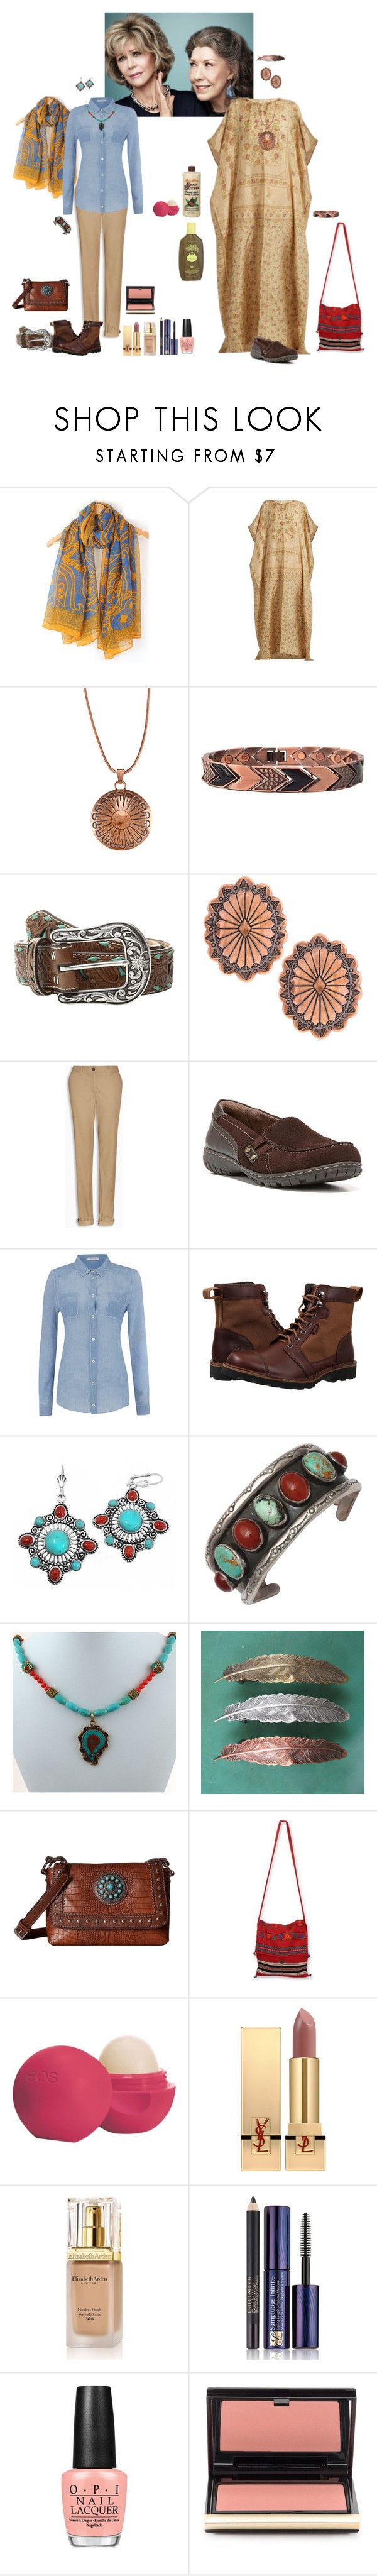 """Grace and Frankie"" by shulabond on Polyvore featuring Mes Demoiselles..., Southwest Moon, BillyTheTree, M&F Western, Naturalizer, Marella, Chrome, BOBBY, NOVICA and Eos"